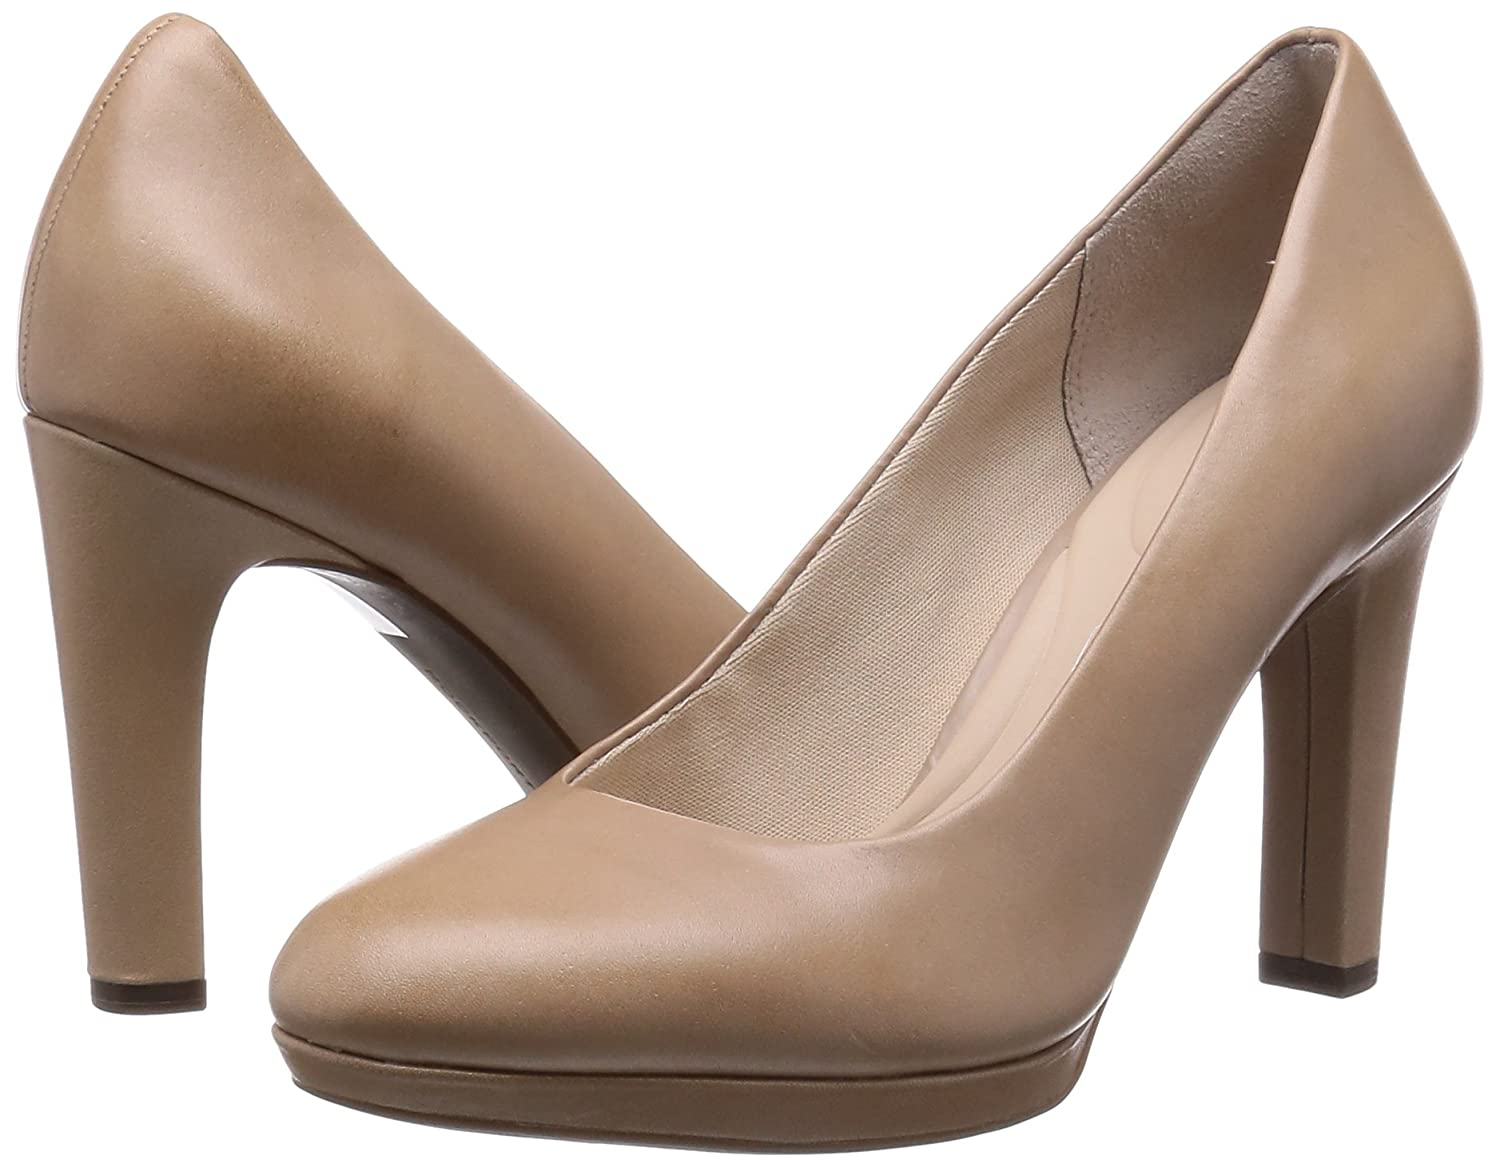 Rockport Damen Ally Plain Pump Pumps Pumps Pumps 00b871